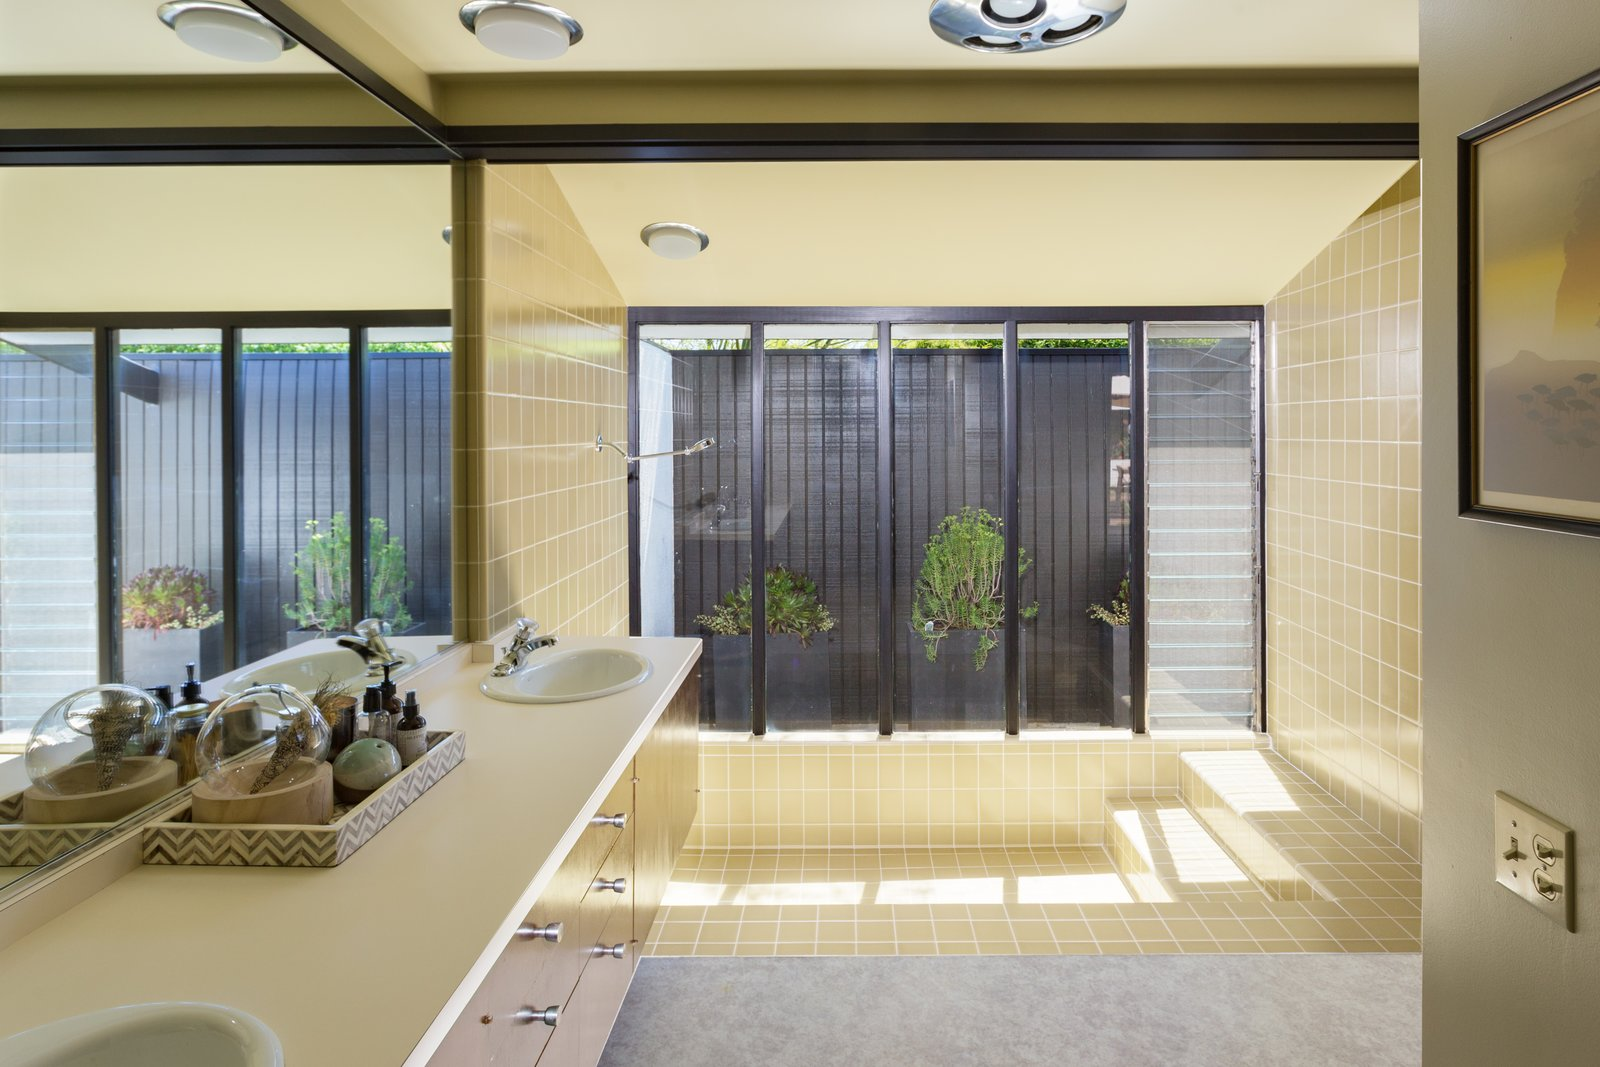 Bath Room and Open Shower  Photo 9 of 14 in Offered at $899K, a Restored Midcentury Abode Shines in Southern California